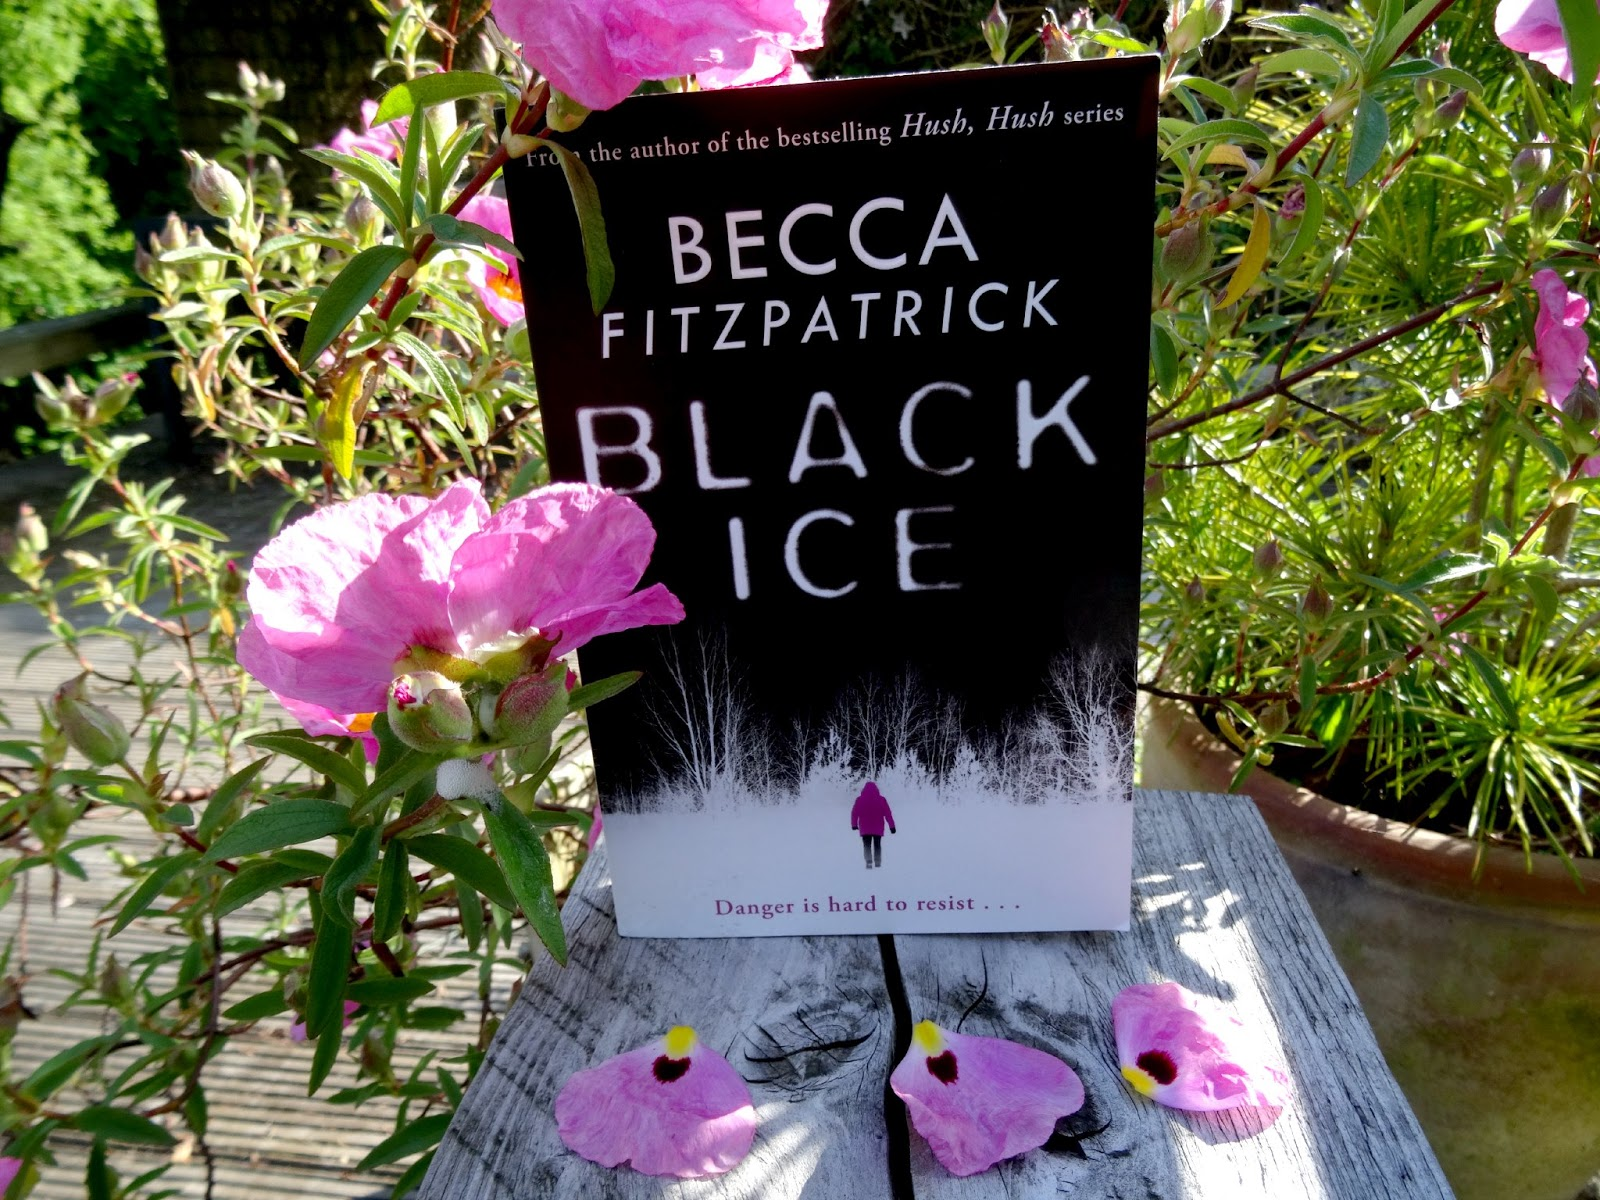 Becca Fitzpatrick Black Ice review